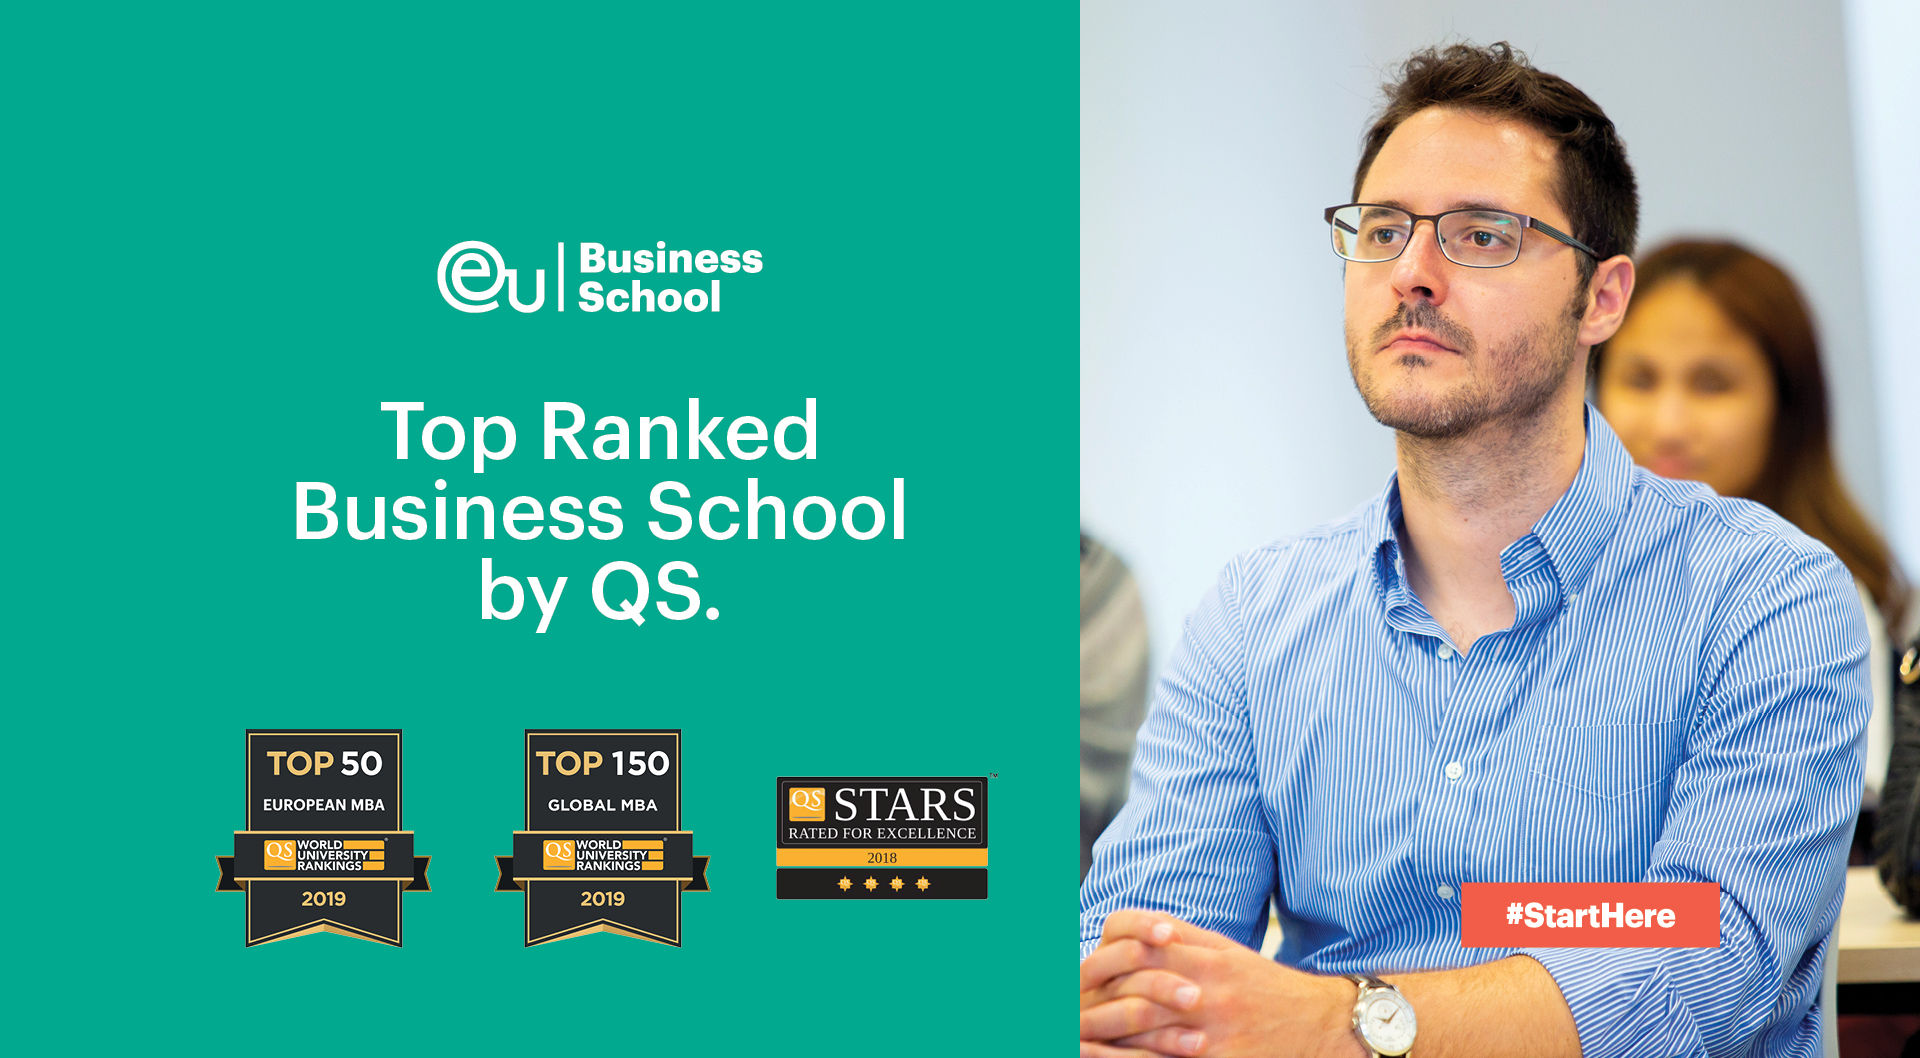 EU Business School